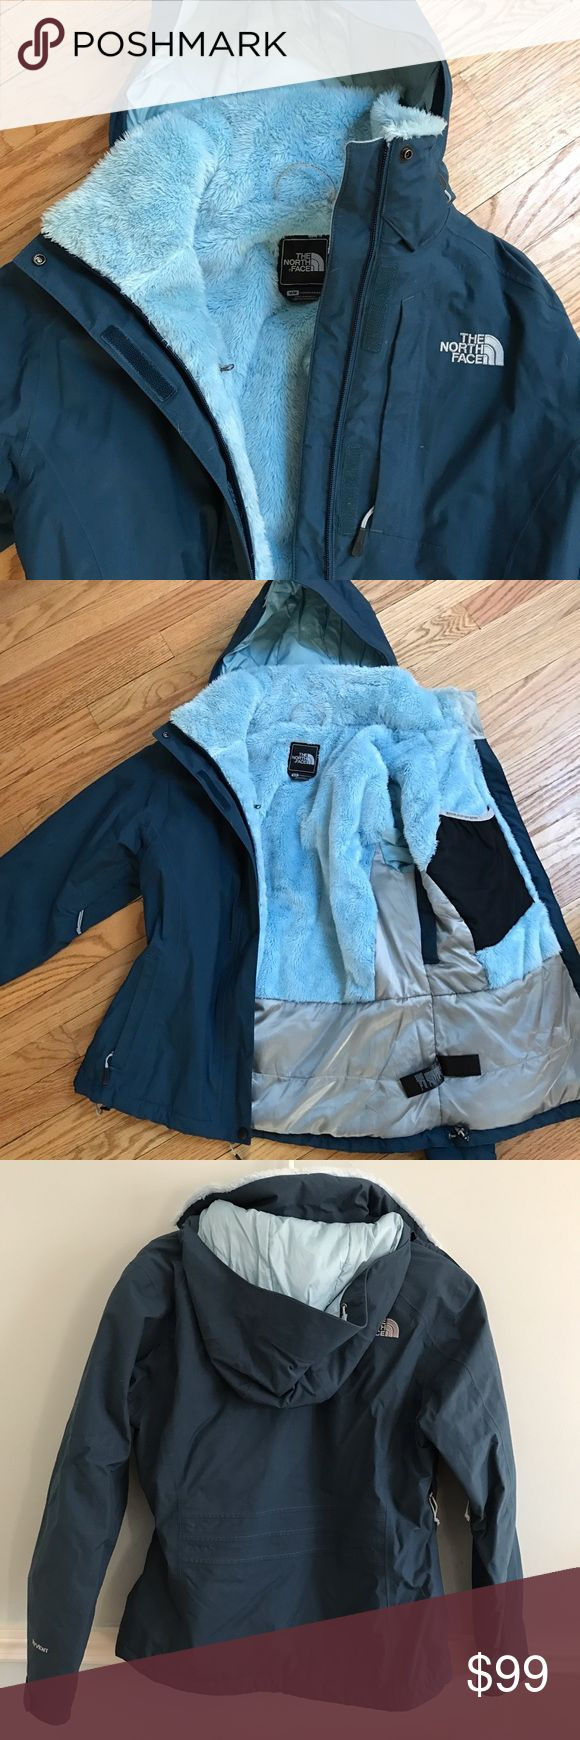 North Face Hyvent women's winter coat, med Warm jacket in excellent condition North Face Jackets & Coats